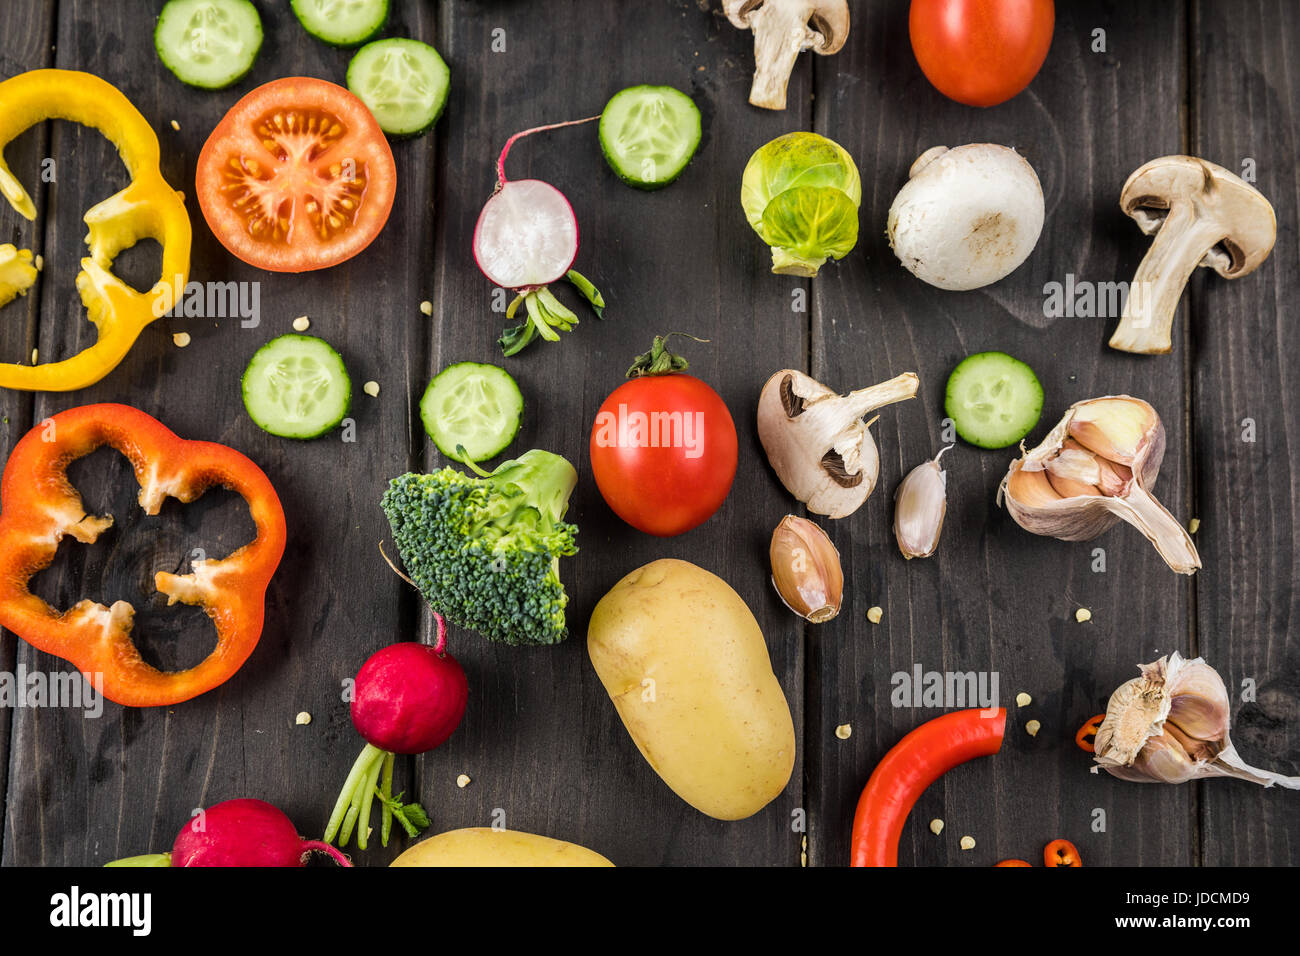 Close-up top view of fresh vegetables on rustic wooden table - Stock Image